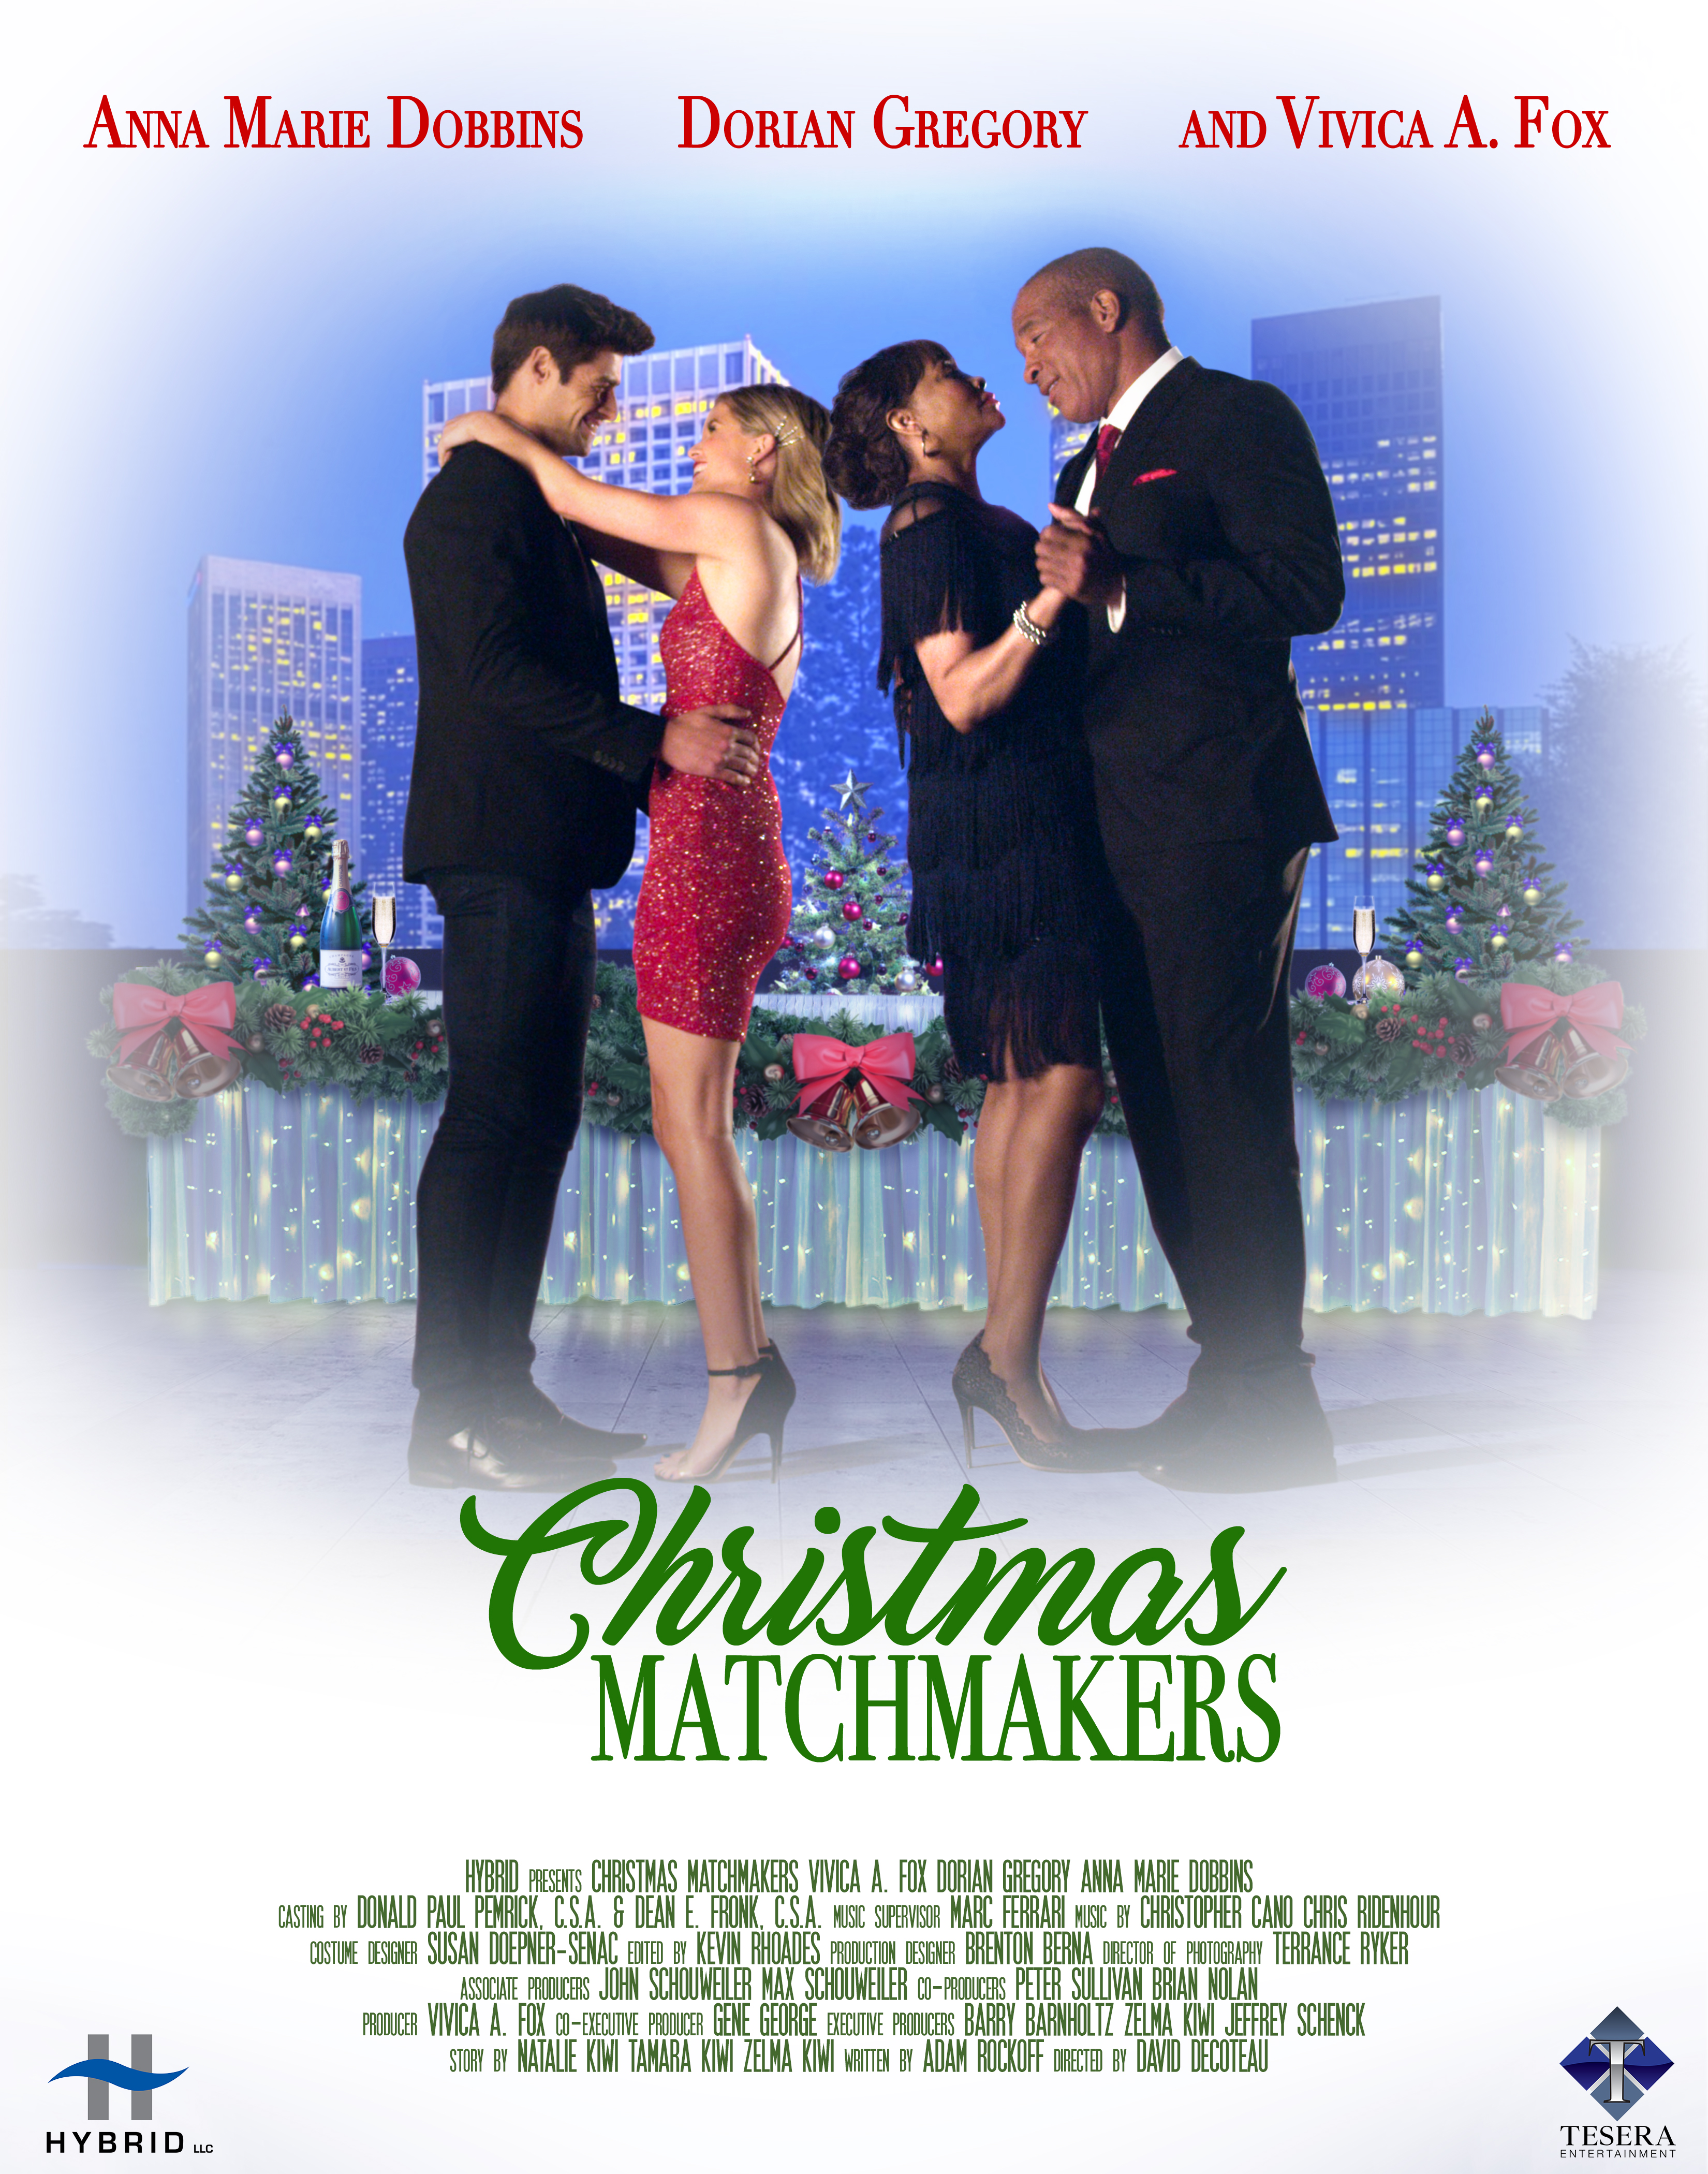 Vivica A. Fox, Dorian Gregory, Anna Marie Dobbins, and Andrew Rogers in Christmas Matchmakers (2019)